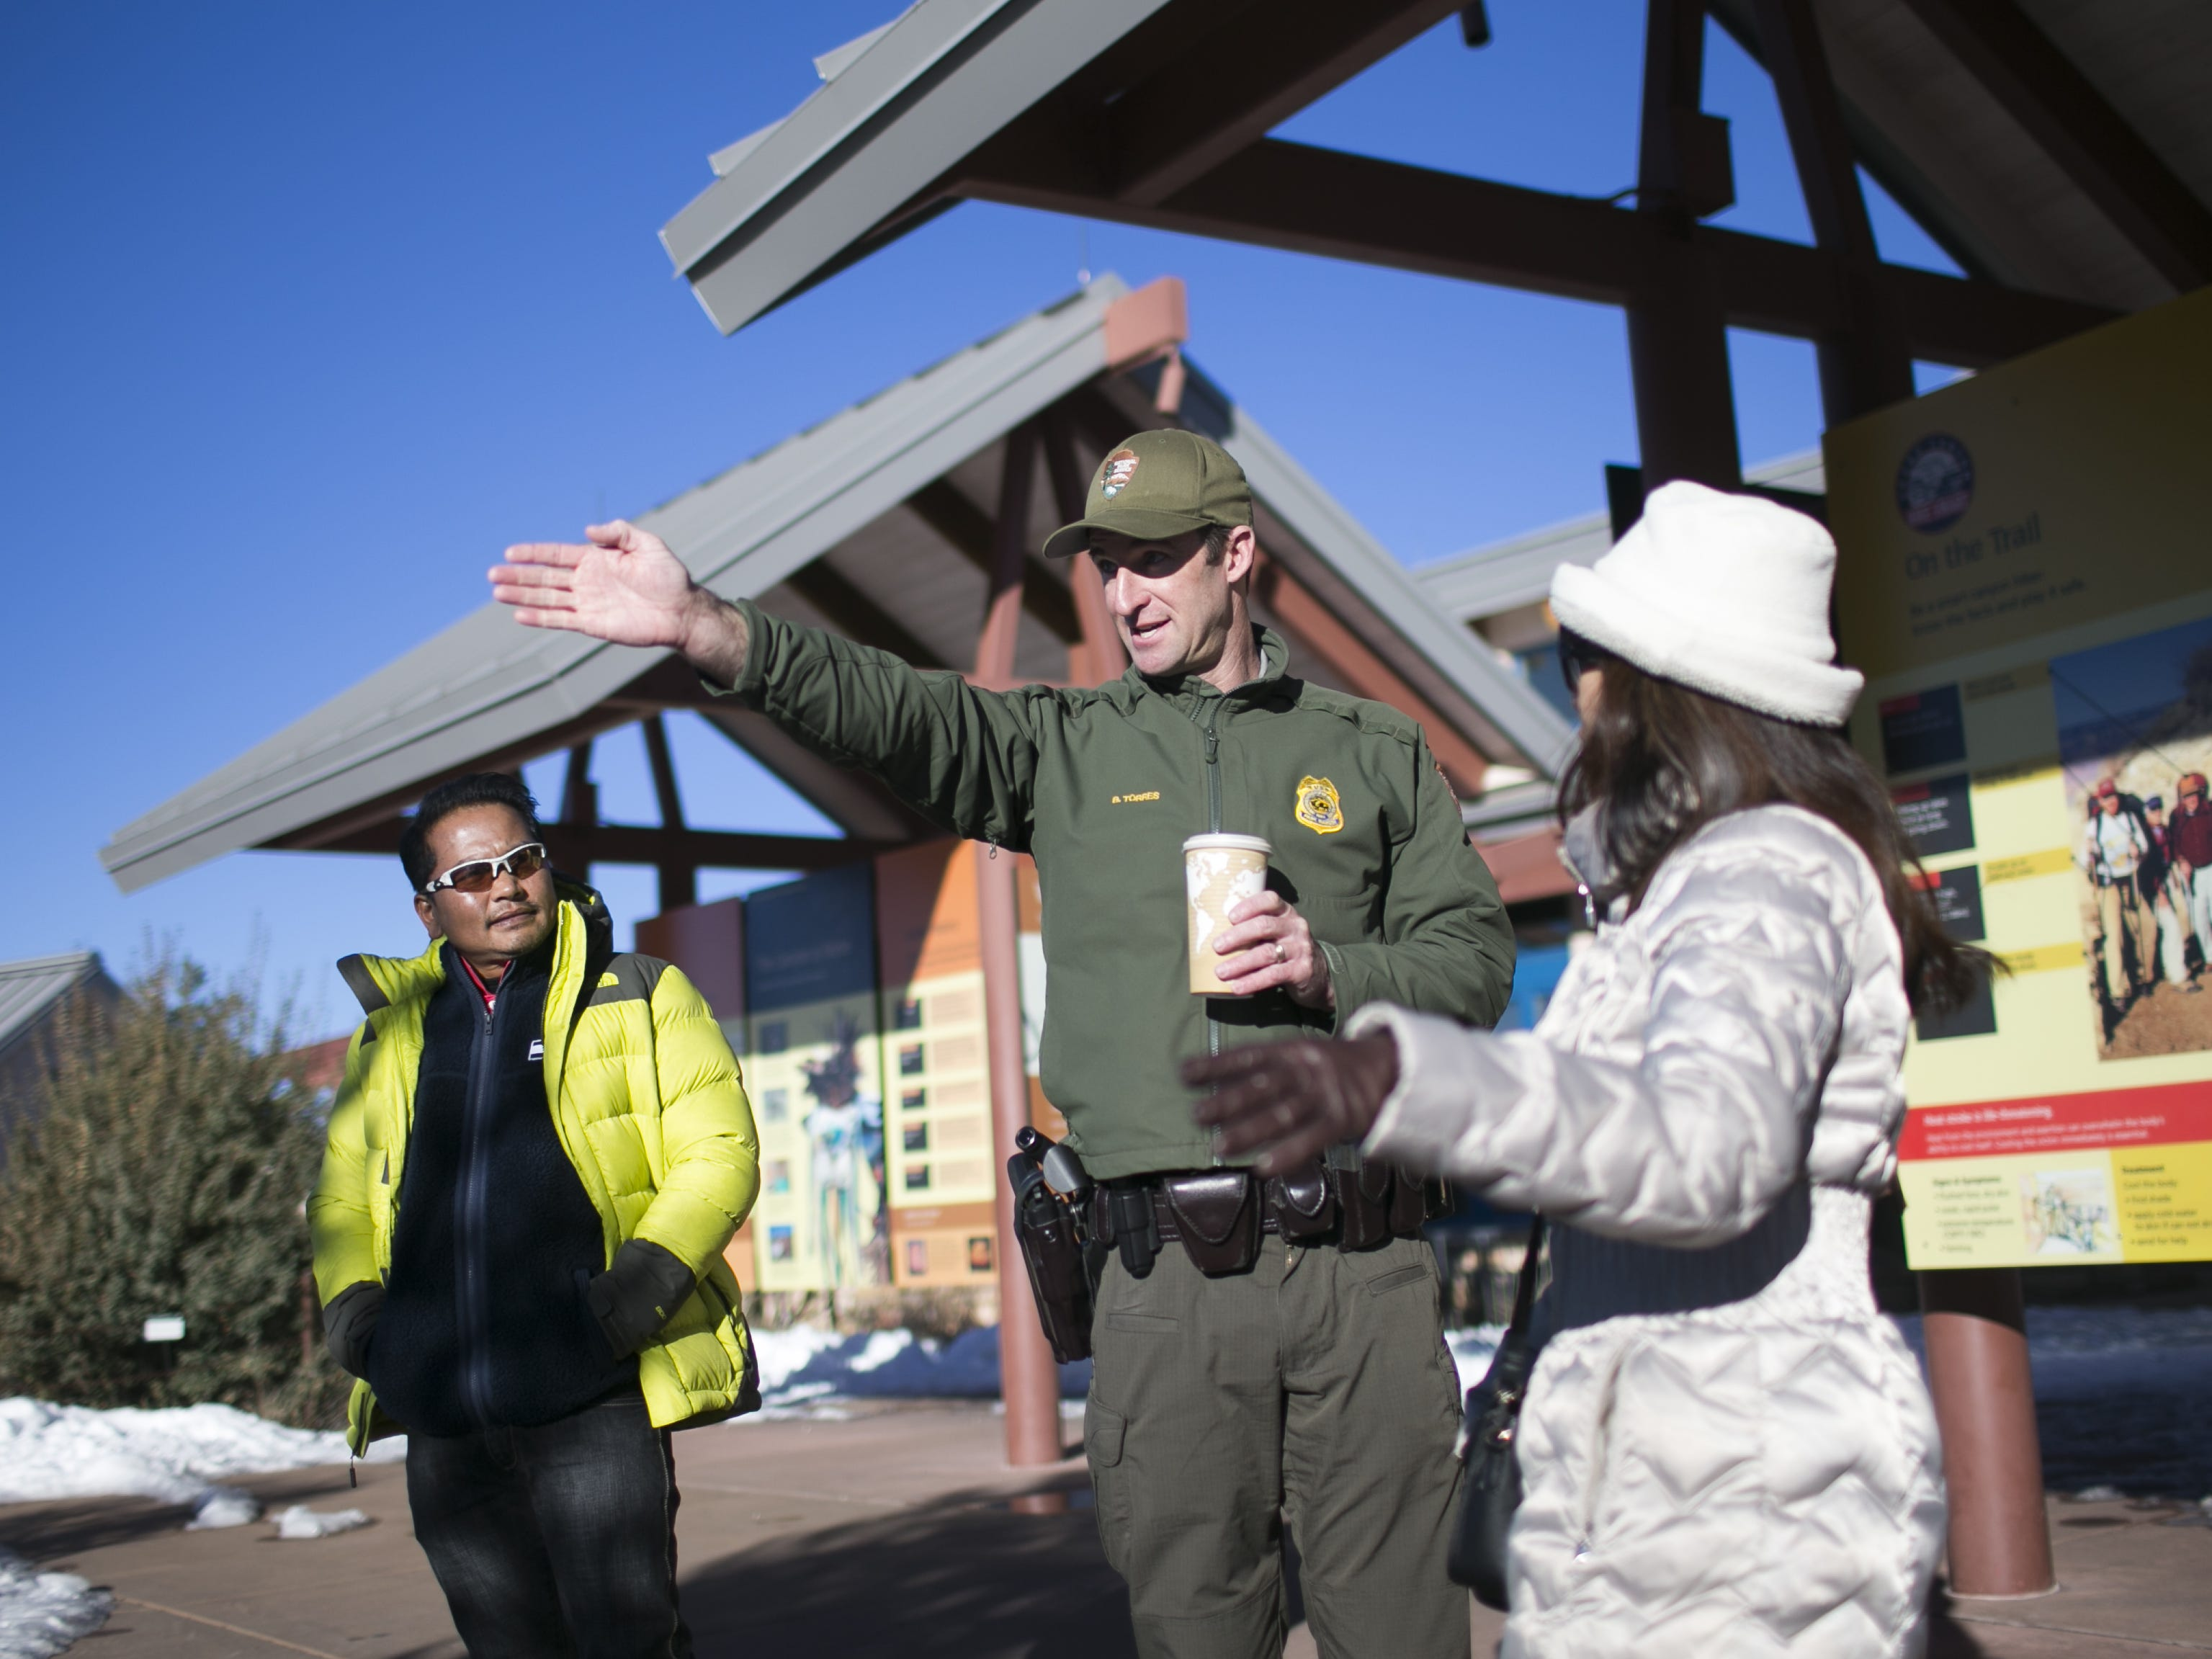 Brandon Torres, center, the Branch Chief of Emergency Services at Grand Canyon National Park, directs guests in the park on Jan. 4, 2019.